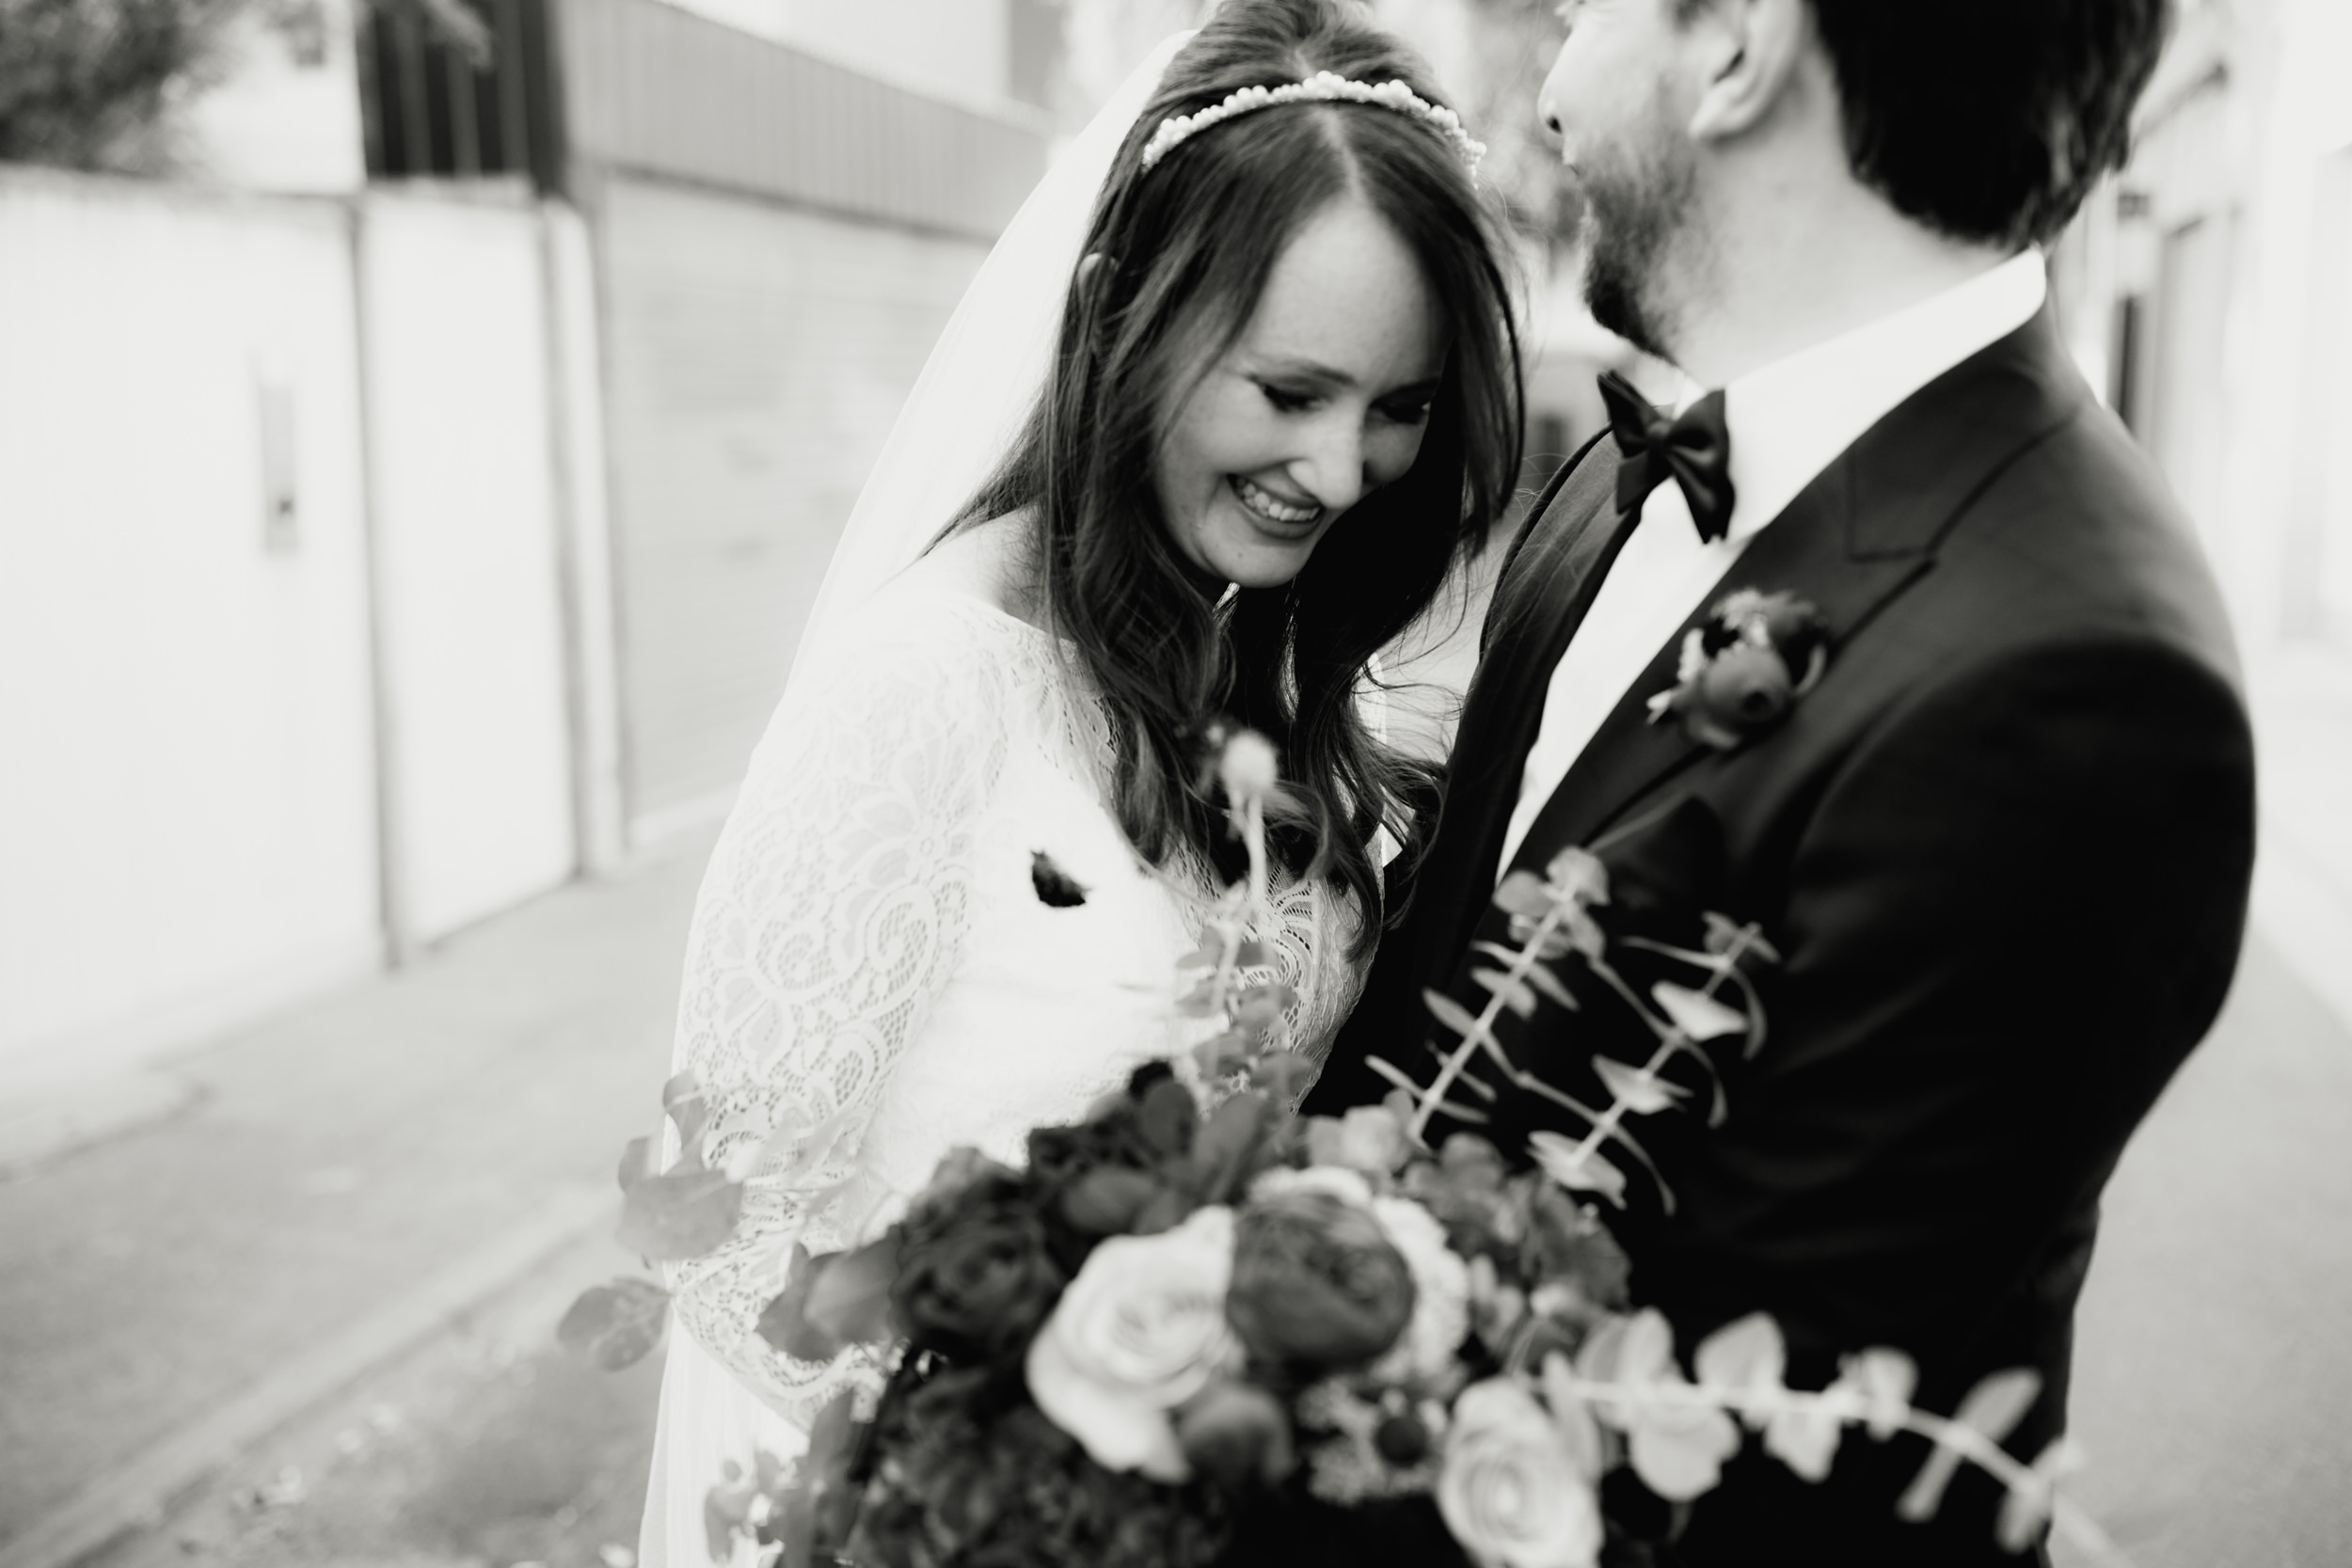 I_Got_You_Babe_Weddings_Emily_Matt_Rupert_Glasshaus_Melbourne0119.JPG